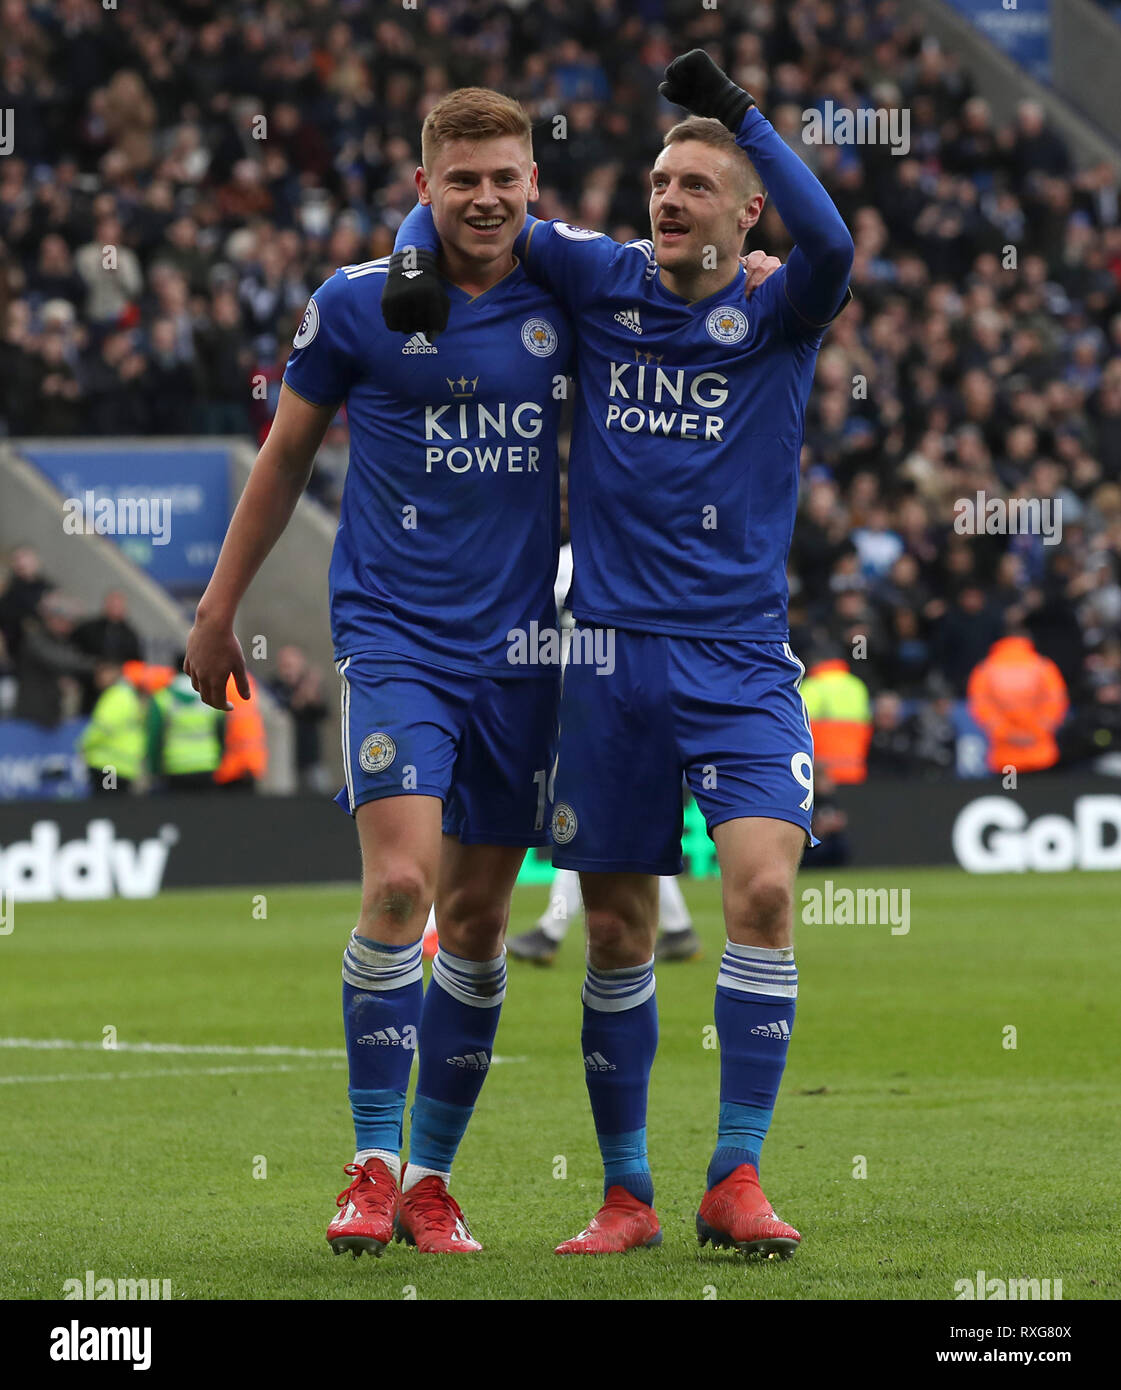 Leicester City's Jamie Vardy (right) celebrates scoring his side's third  goal of the game during Leicester City's Harvey Barnes the Premier League  match at the King Power Stadium, Leicester Stock Photo -